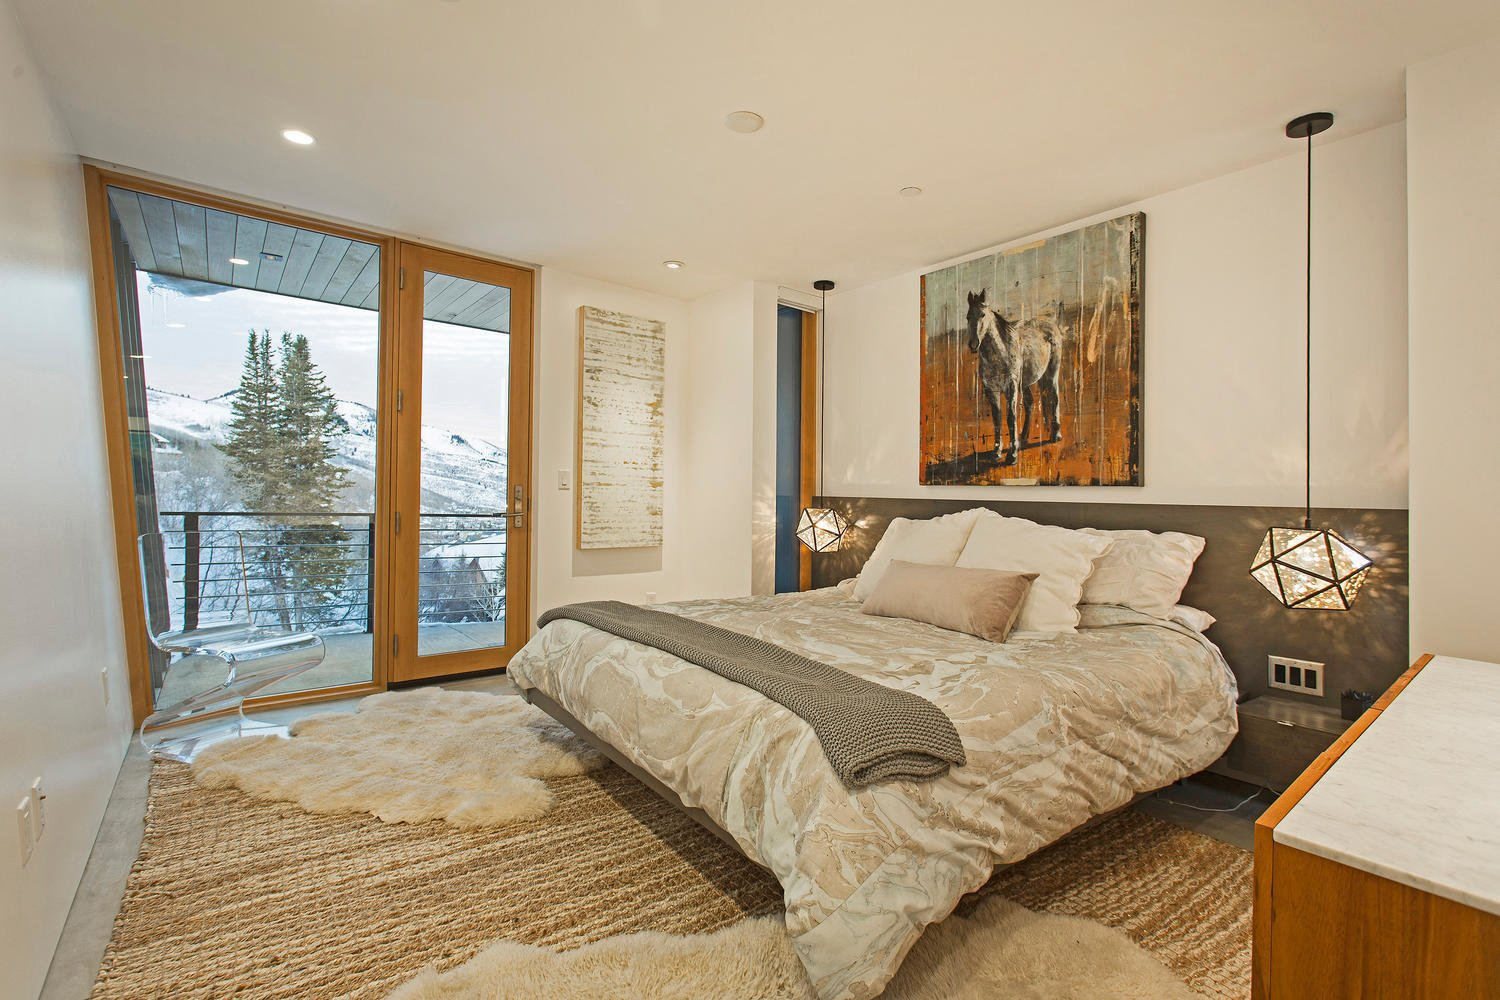 The master bedroom has access to a private terrace with alpine vistas.  Photo 7 of 10 in A Plunging Roof Carves Out Space in This Park City Home Offered at $2.4M